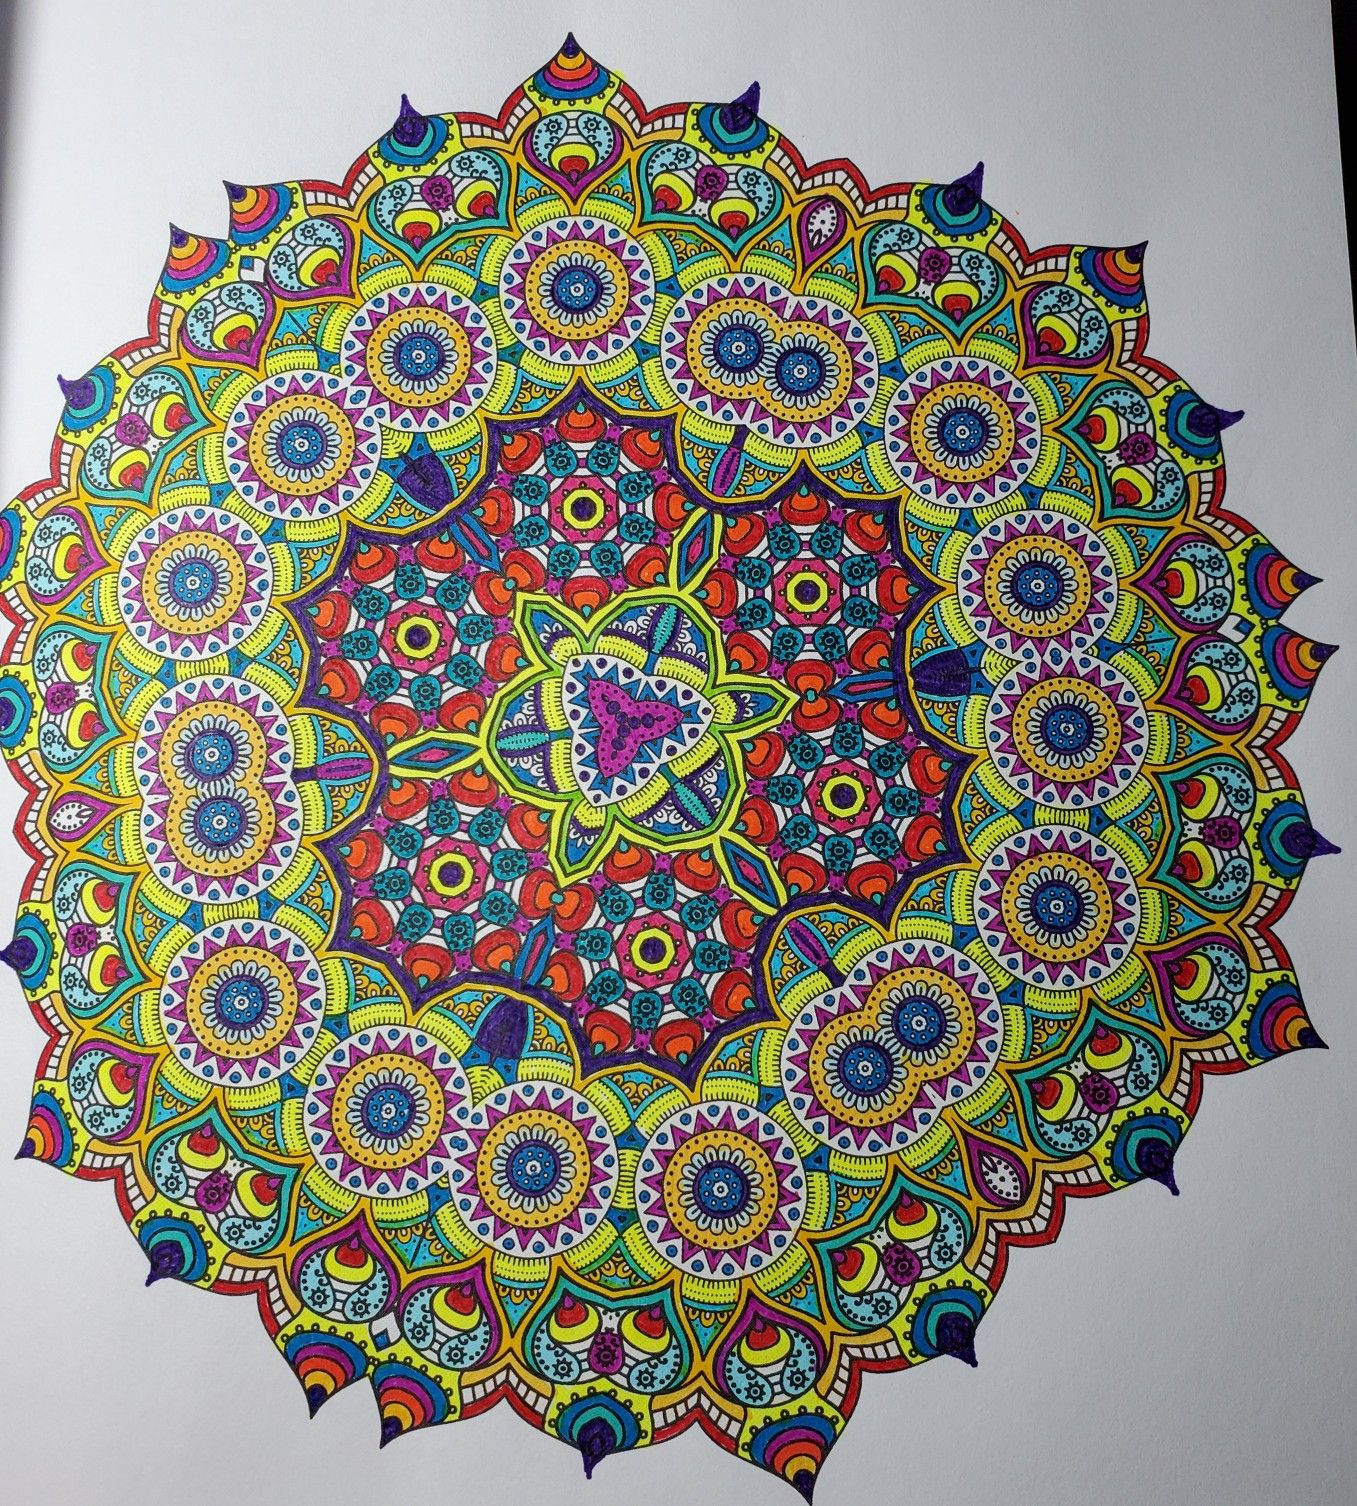 Insane Mandalas Vol 1 The Original Stress Inducing Coloring Book The World S Hardest Coloring Book Marti Jo S Coloring Coloring Books Mandala Color